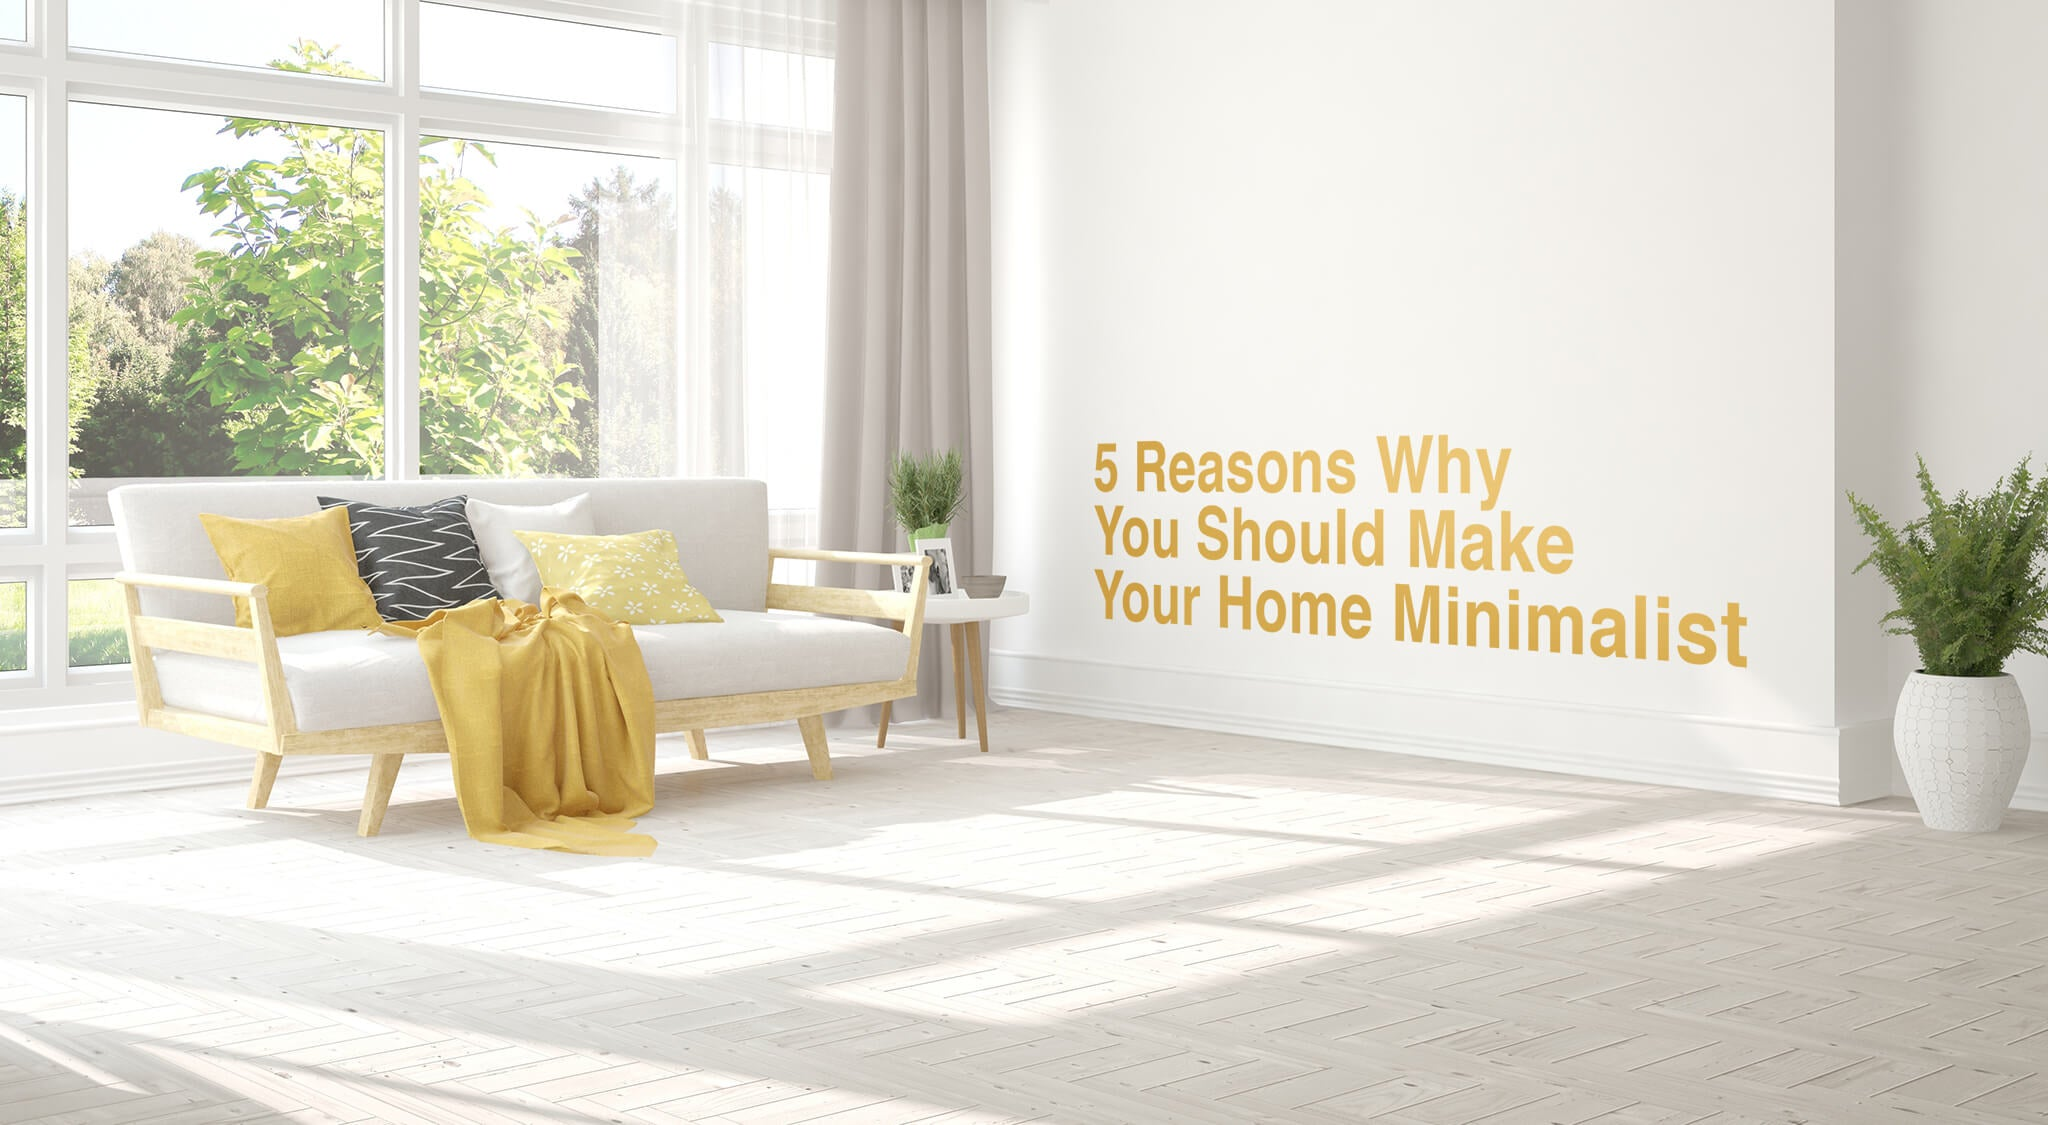 5 Reasons Why You Should Make Your Home Minimalist